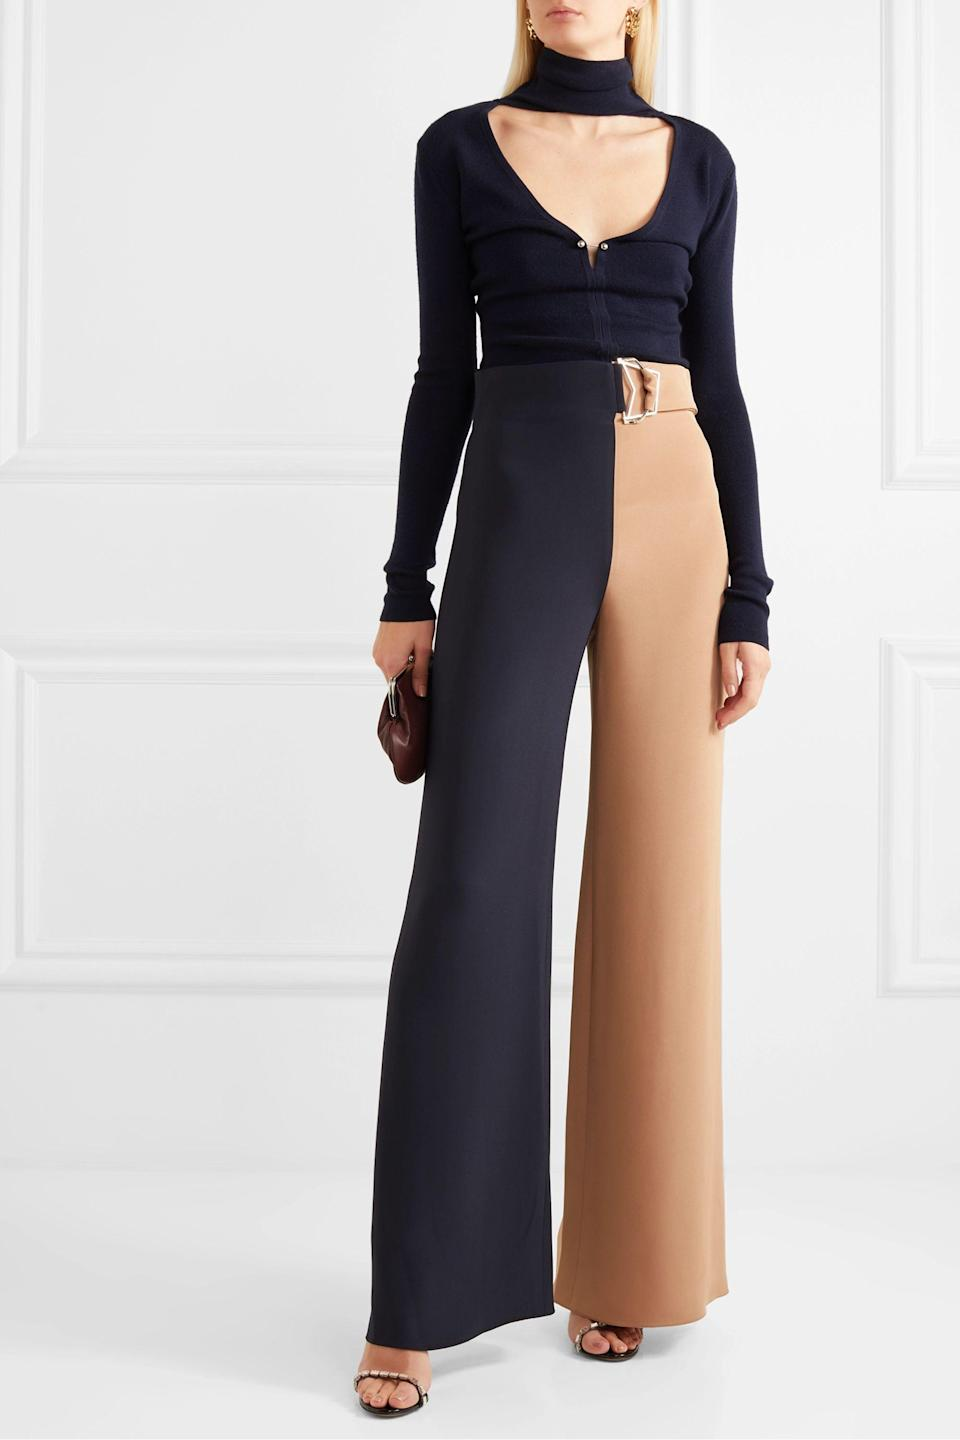 """<p><strong>Cushnie</strong></p><p>net-a-porter.com</p><p><strong>$696.50</strong></p><p><a href=""""https://go.redirectingat.com?id=74968X1596630&url=https%3A%2F%2Fwww.net-a-porter.com%2Fen-us%2Fshop%2Fproduct%2Fcushnie%2Fbelted-two-tone-silk-crepe-wide-leg-pants%2F1205666&sref=https%3A%2F%2Fwww.cosmopolitan.com%2Fstyle-beauty%2Ffashion%2Fg30933395%2Ffall-fashion-trends-2020%2F"""" rel=""""nofollow noopener"""" target=""""_blank"""" data-ylk=""""slk:Shop Now"""" class=""""link rapid-noclick-resp"""">Shop Now</a></p><p>Your coworkers and your boss will be impressed when you walk into the office wearing these.</p>"""